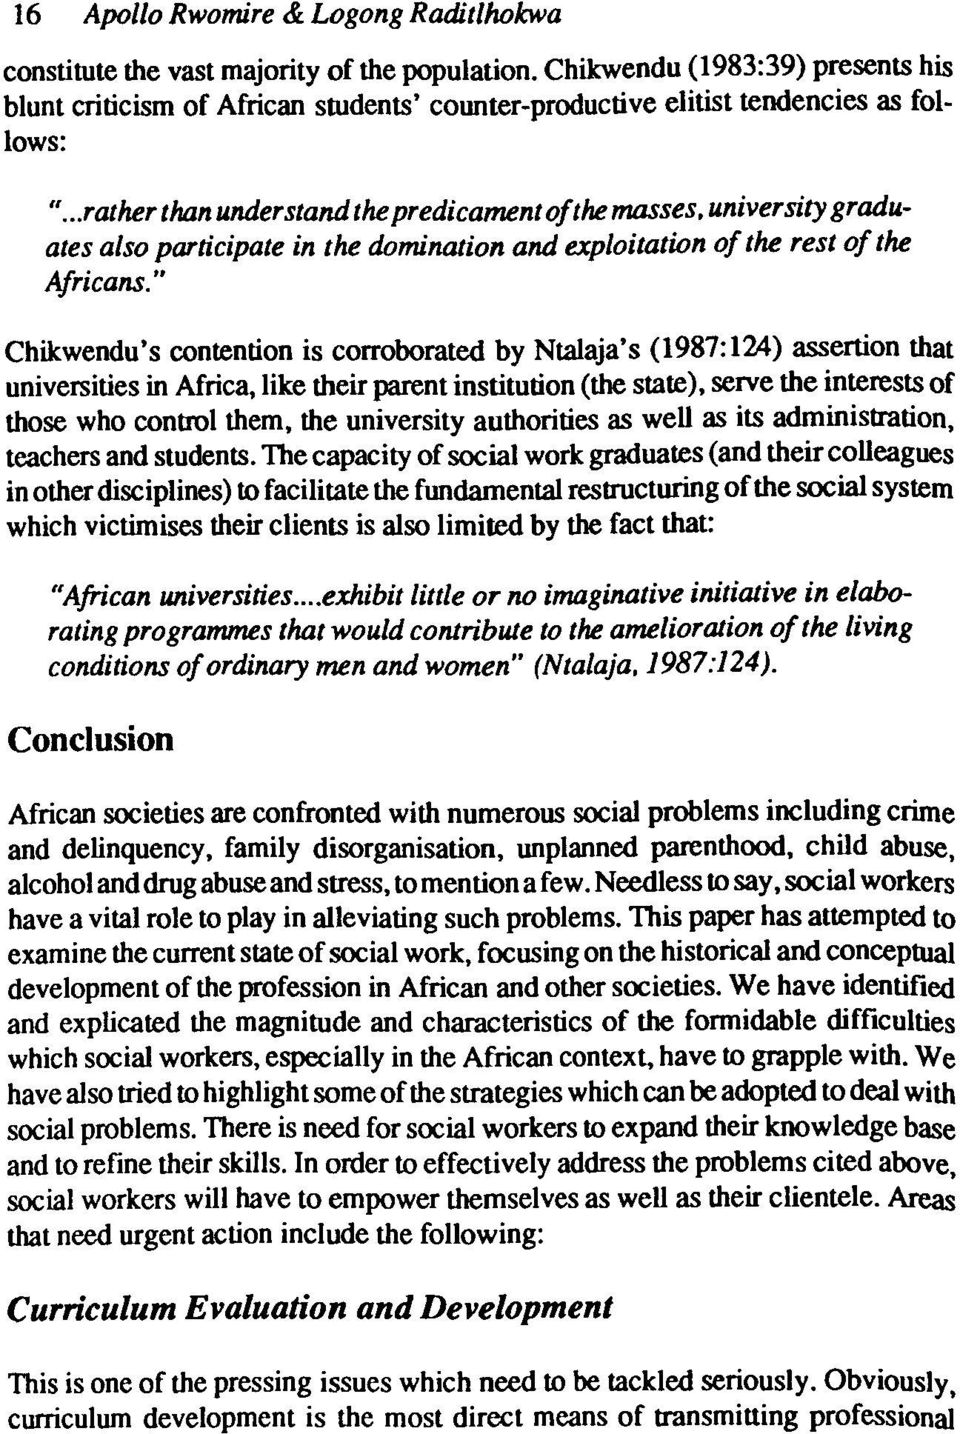 university graduates also participate in the domination and exploitation of the rest of the Africans.